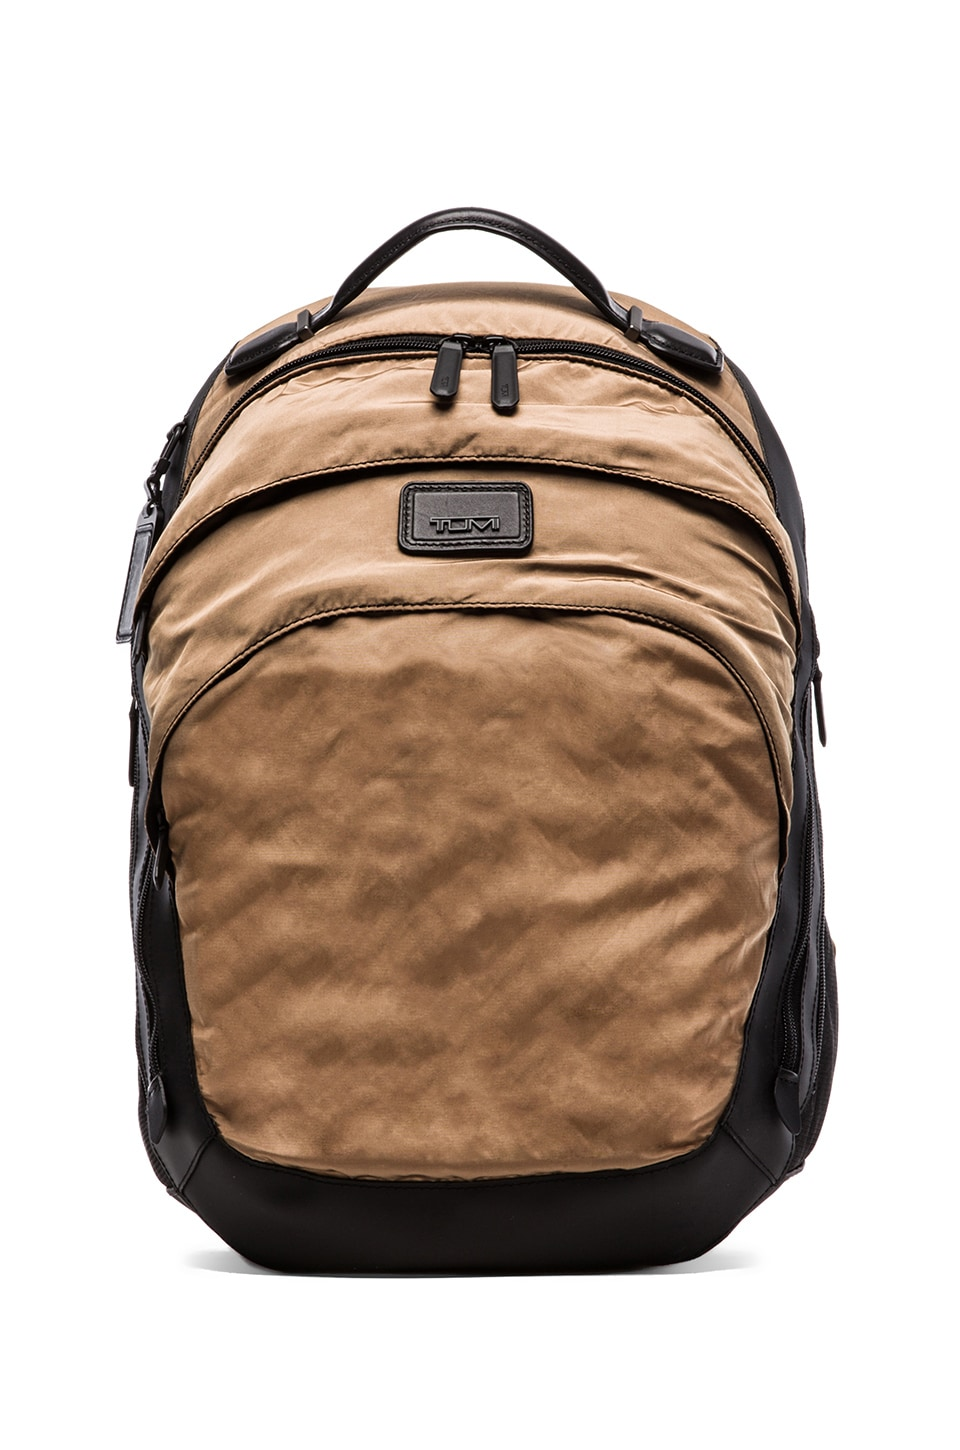 Tumi Virtue Diligence Backpack in Khaki